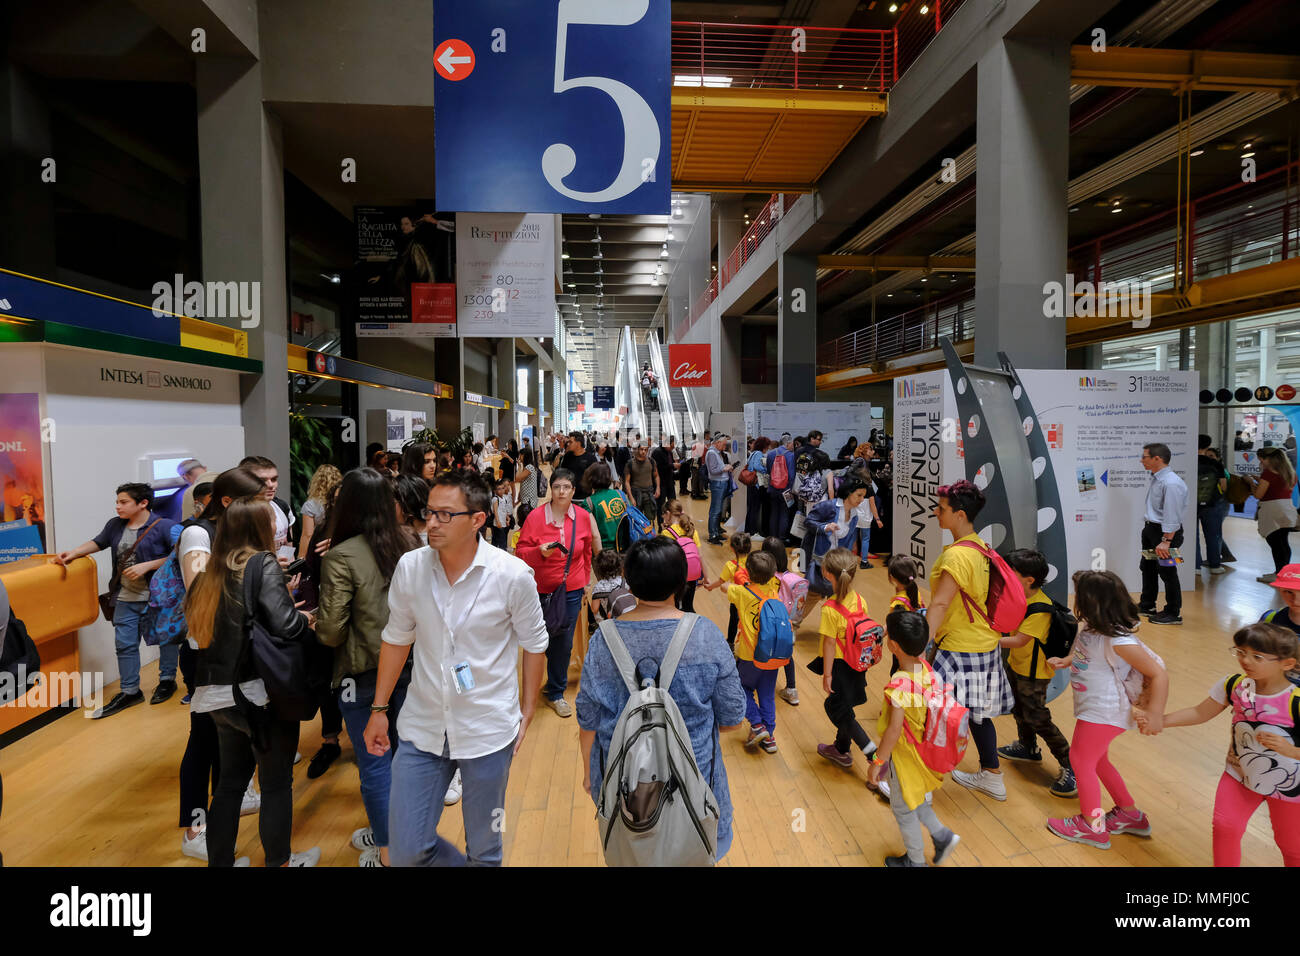 Turin, Piedmont, Italy, 10th May, 2018. International Book fair 2018,first day.People visiting the book fair Credit: RENATO VALTERZA/Alamy Live News - Stock Image